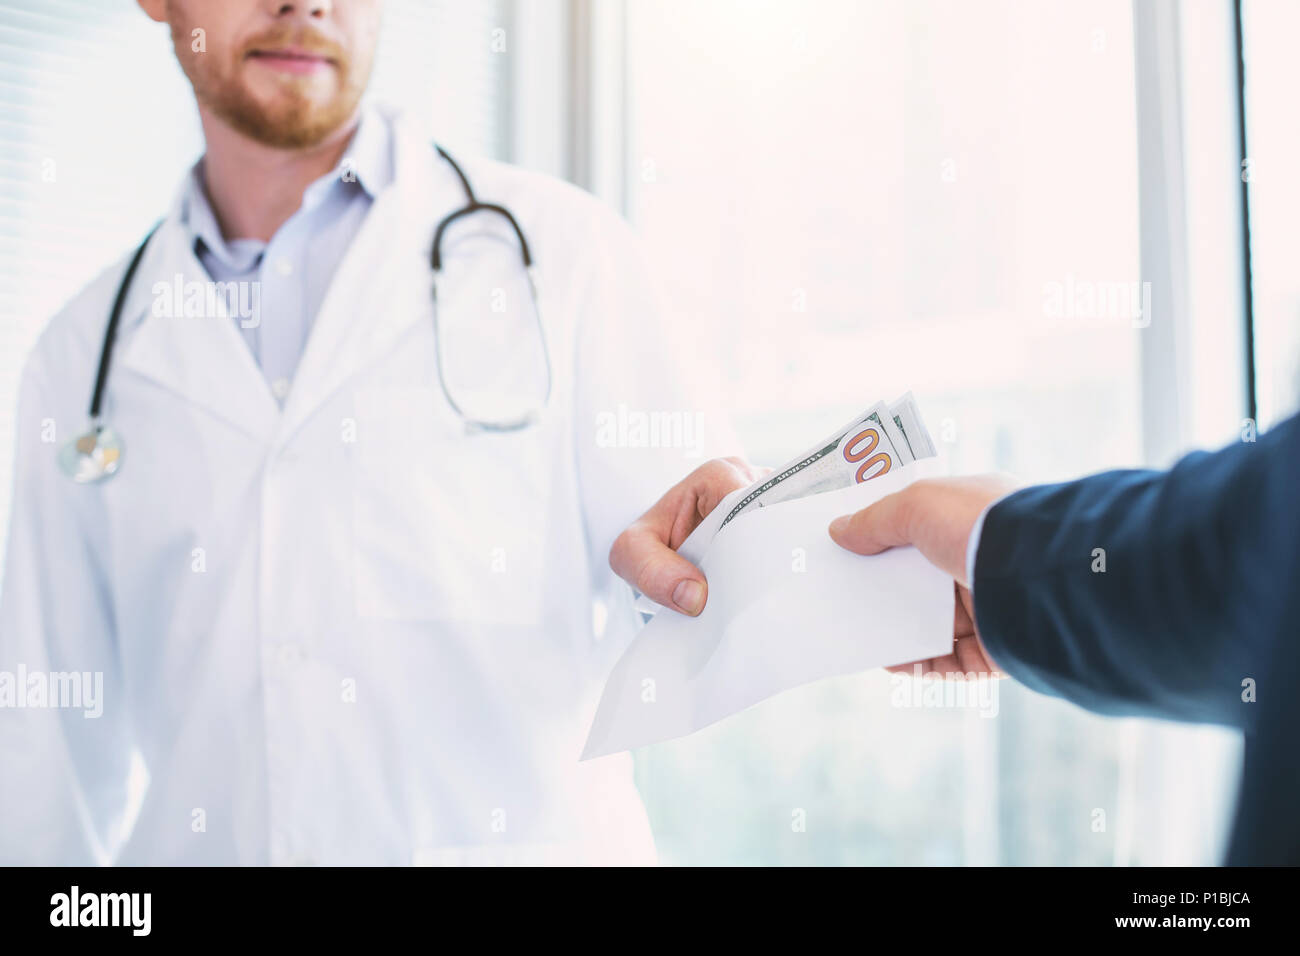 Content doctor taking a substantial bribe - Stock Image